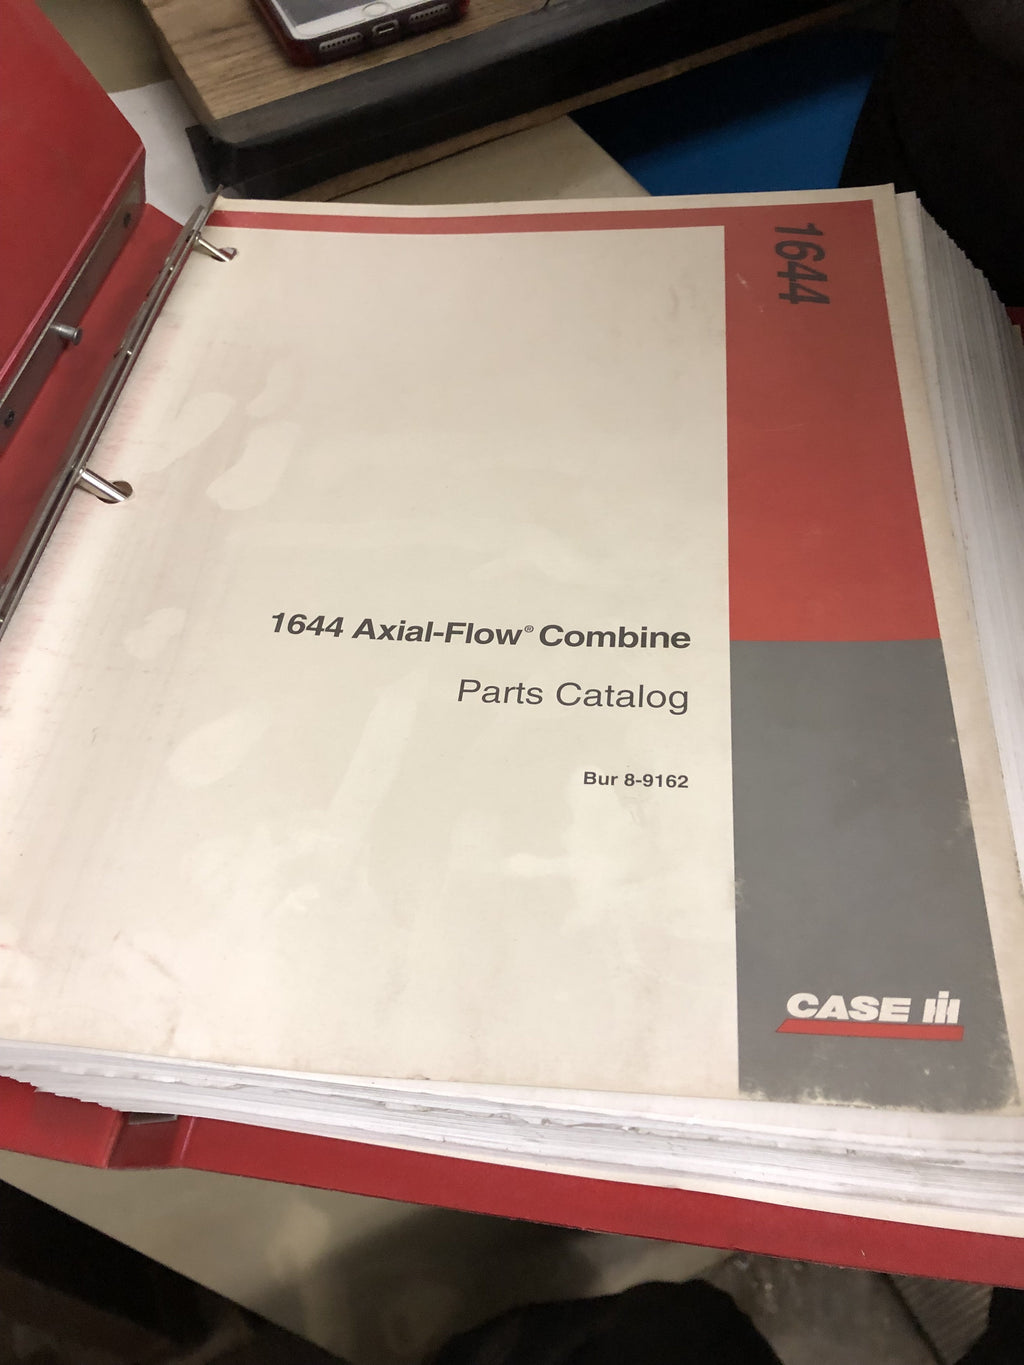 CASE IH 1644 Axial Flow Combine Parts Catalog in Binder. Rac 8-9162